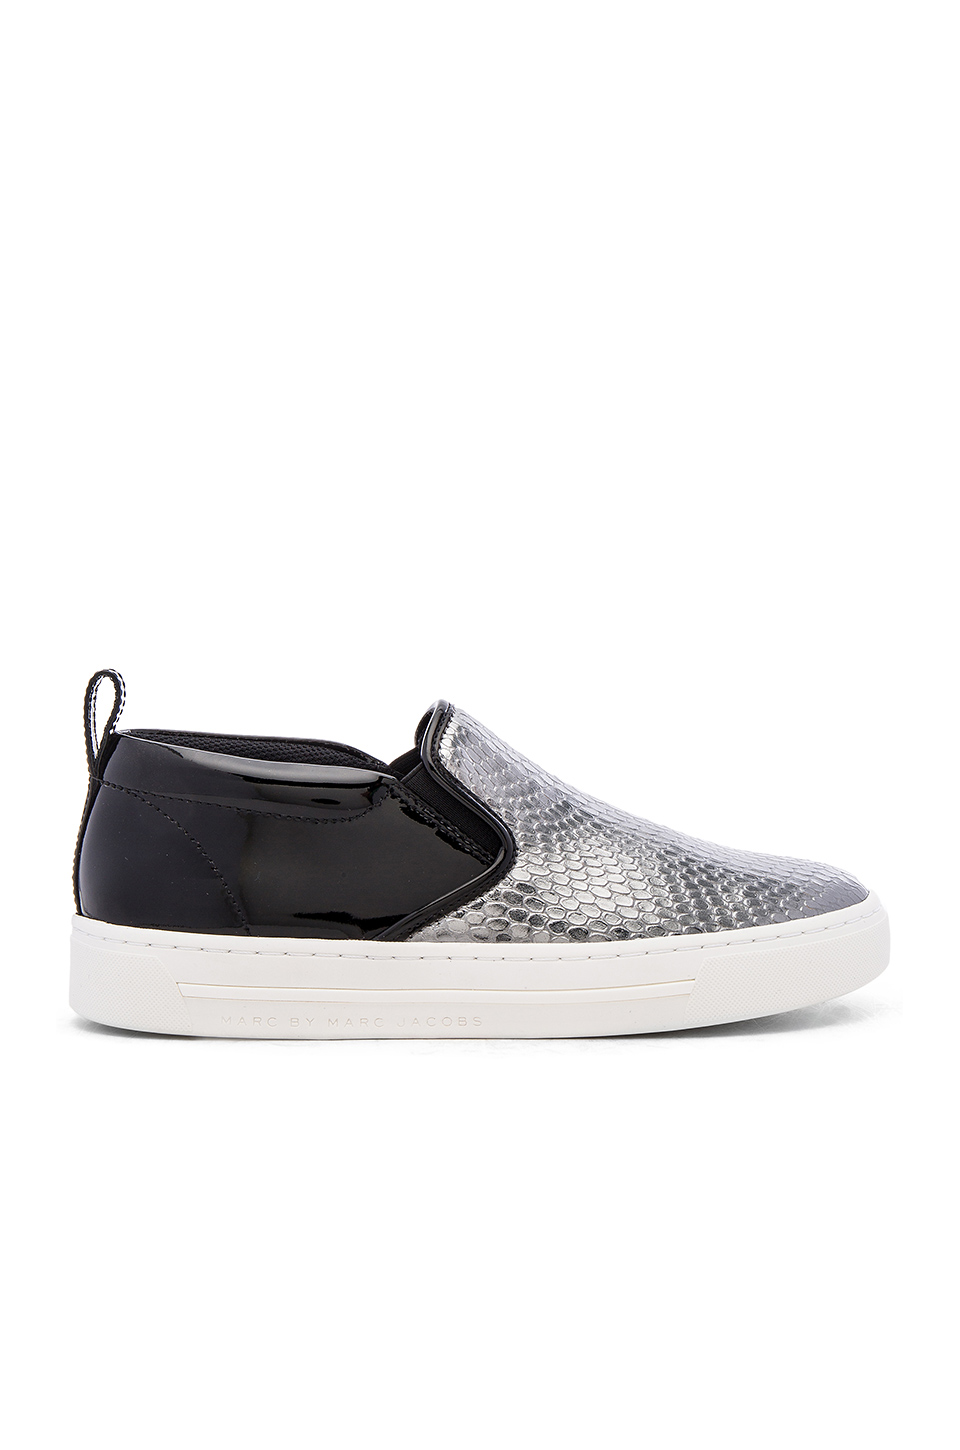 Marc By Marc Jacobs Leather Glitter Slip-On Sneakers In Dark Silver